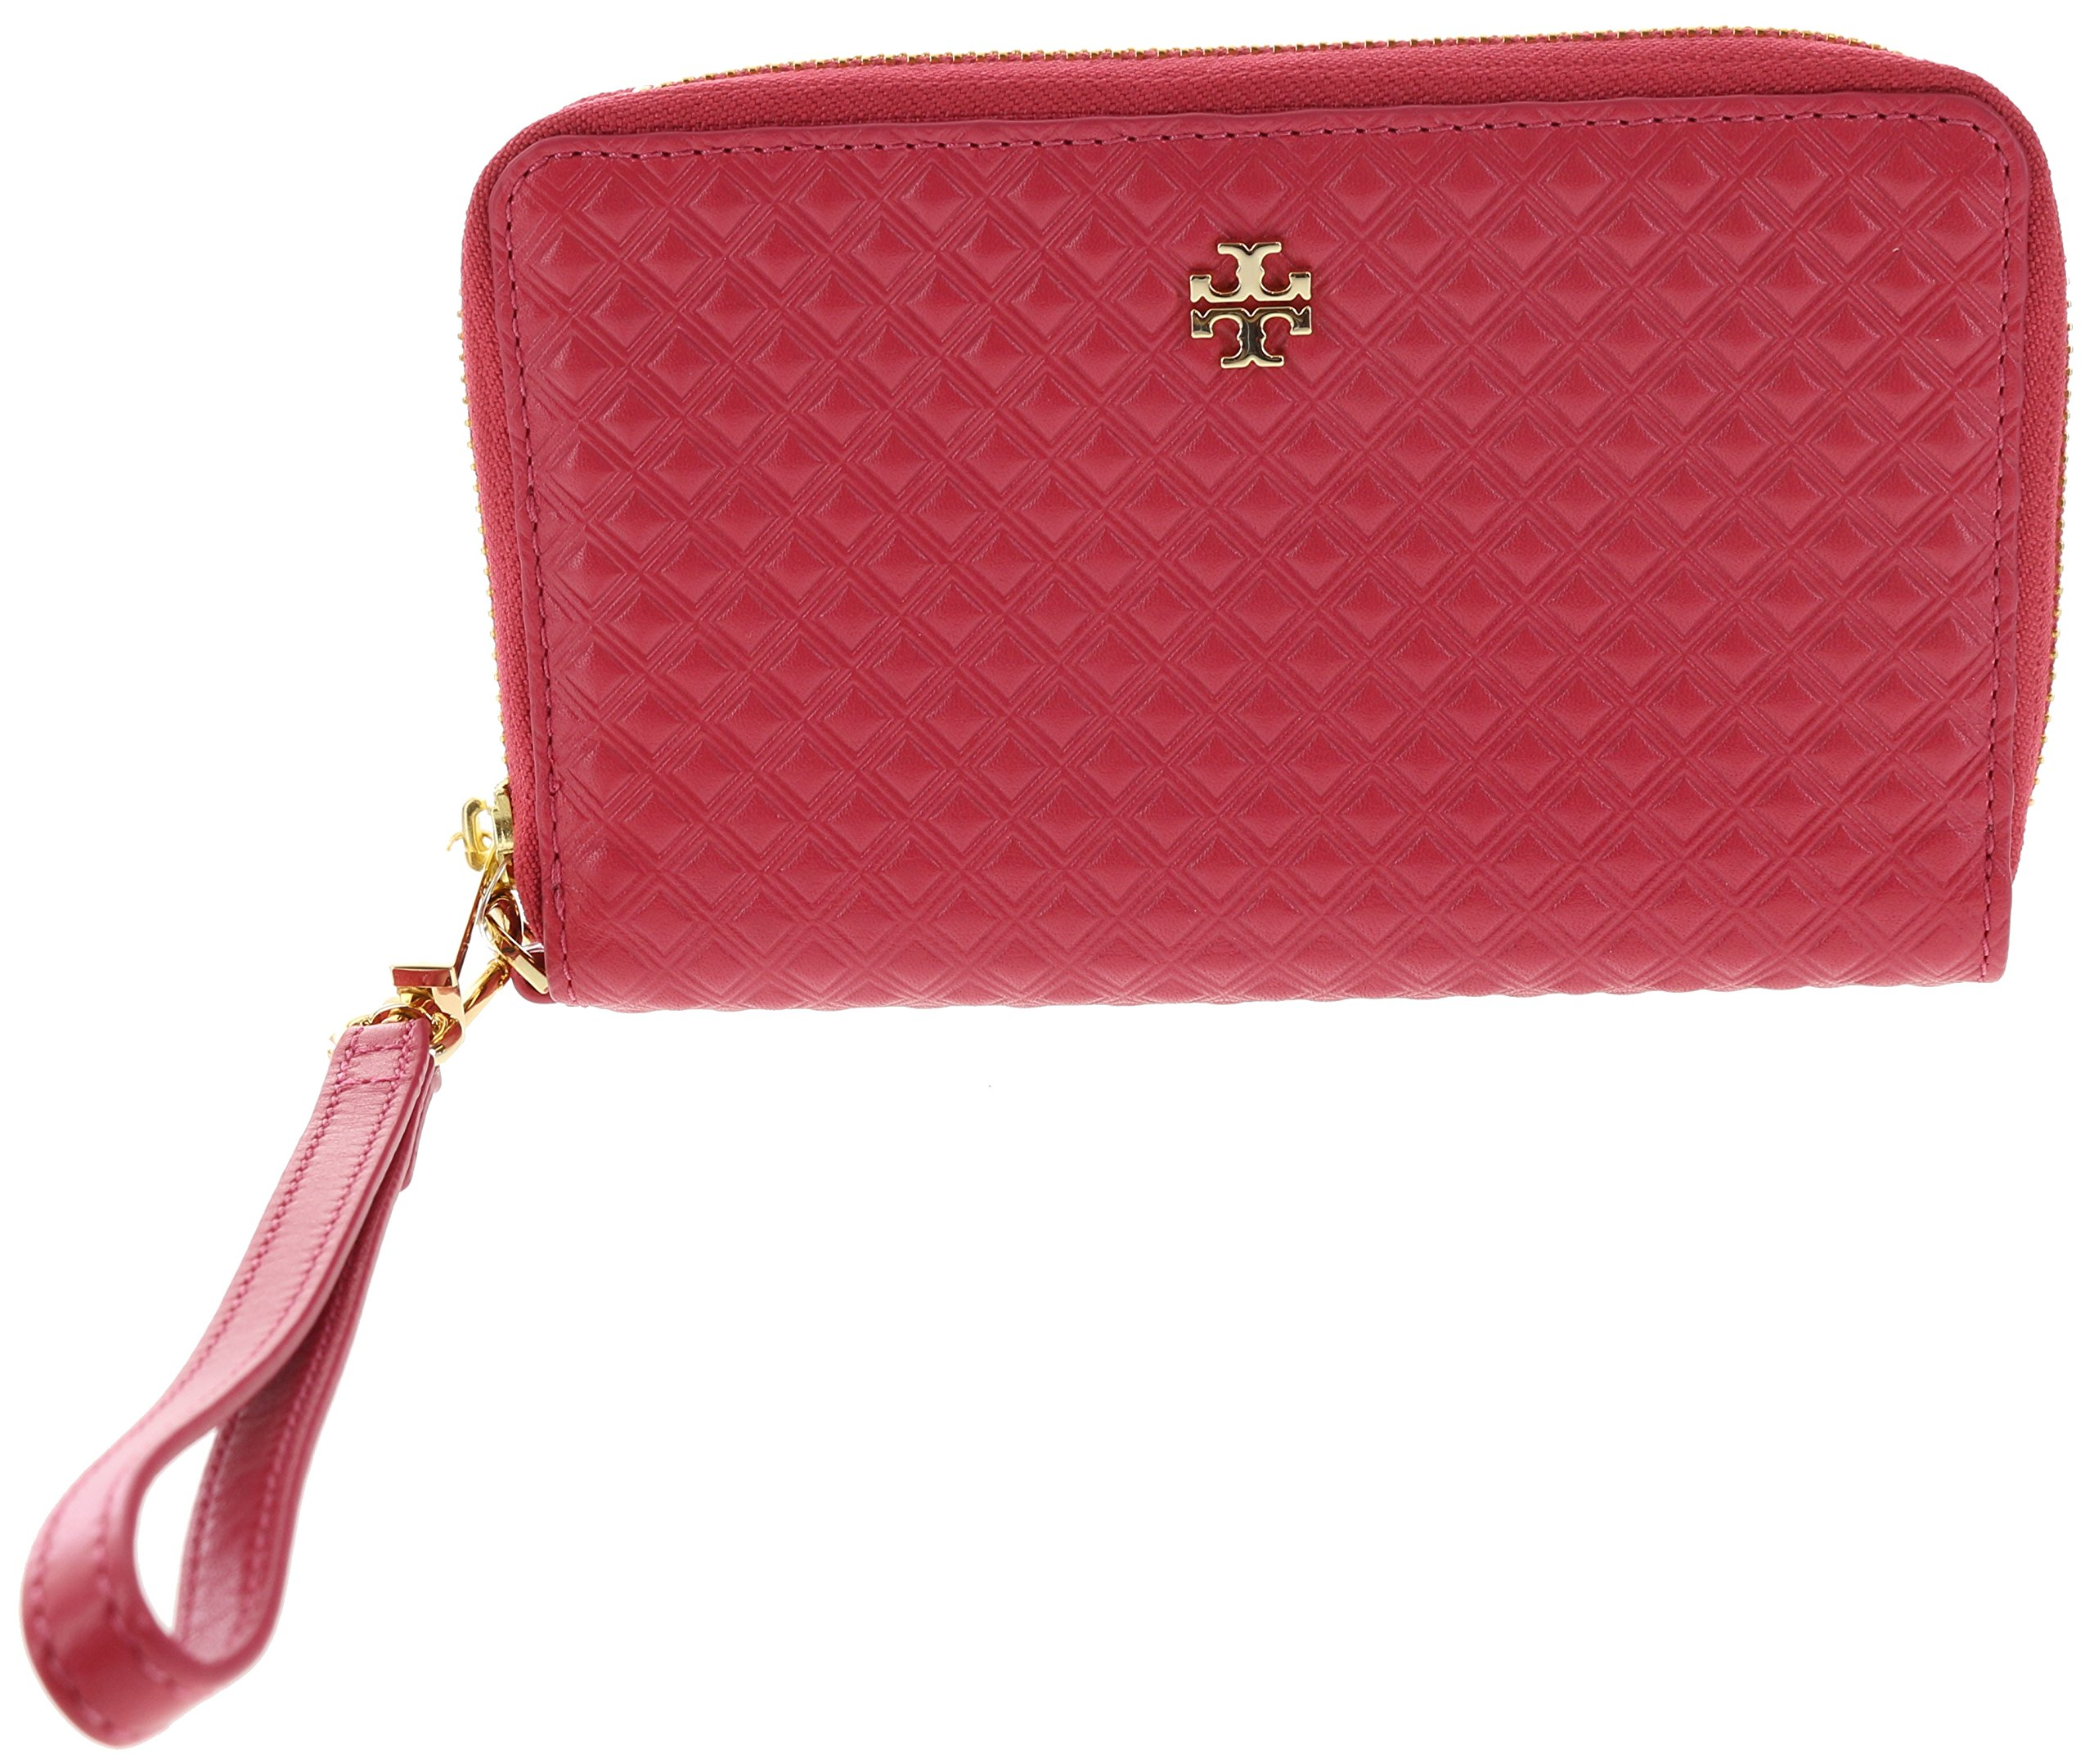 Tory Burch Marion Embossed Leather Smartphone Wristlet, Style No. 30591 (Dark Peony)